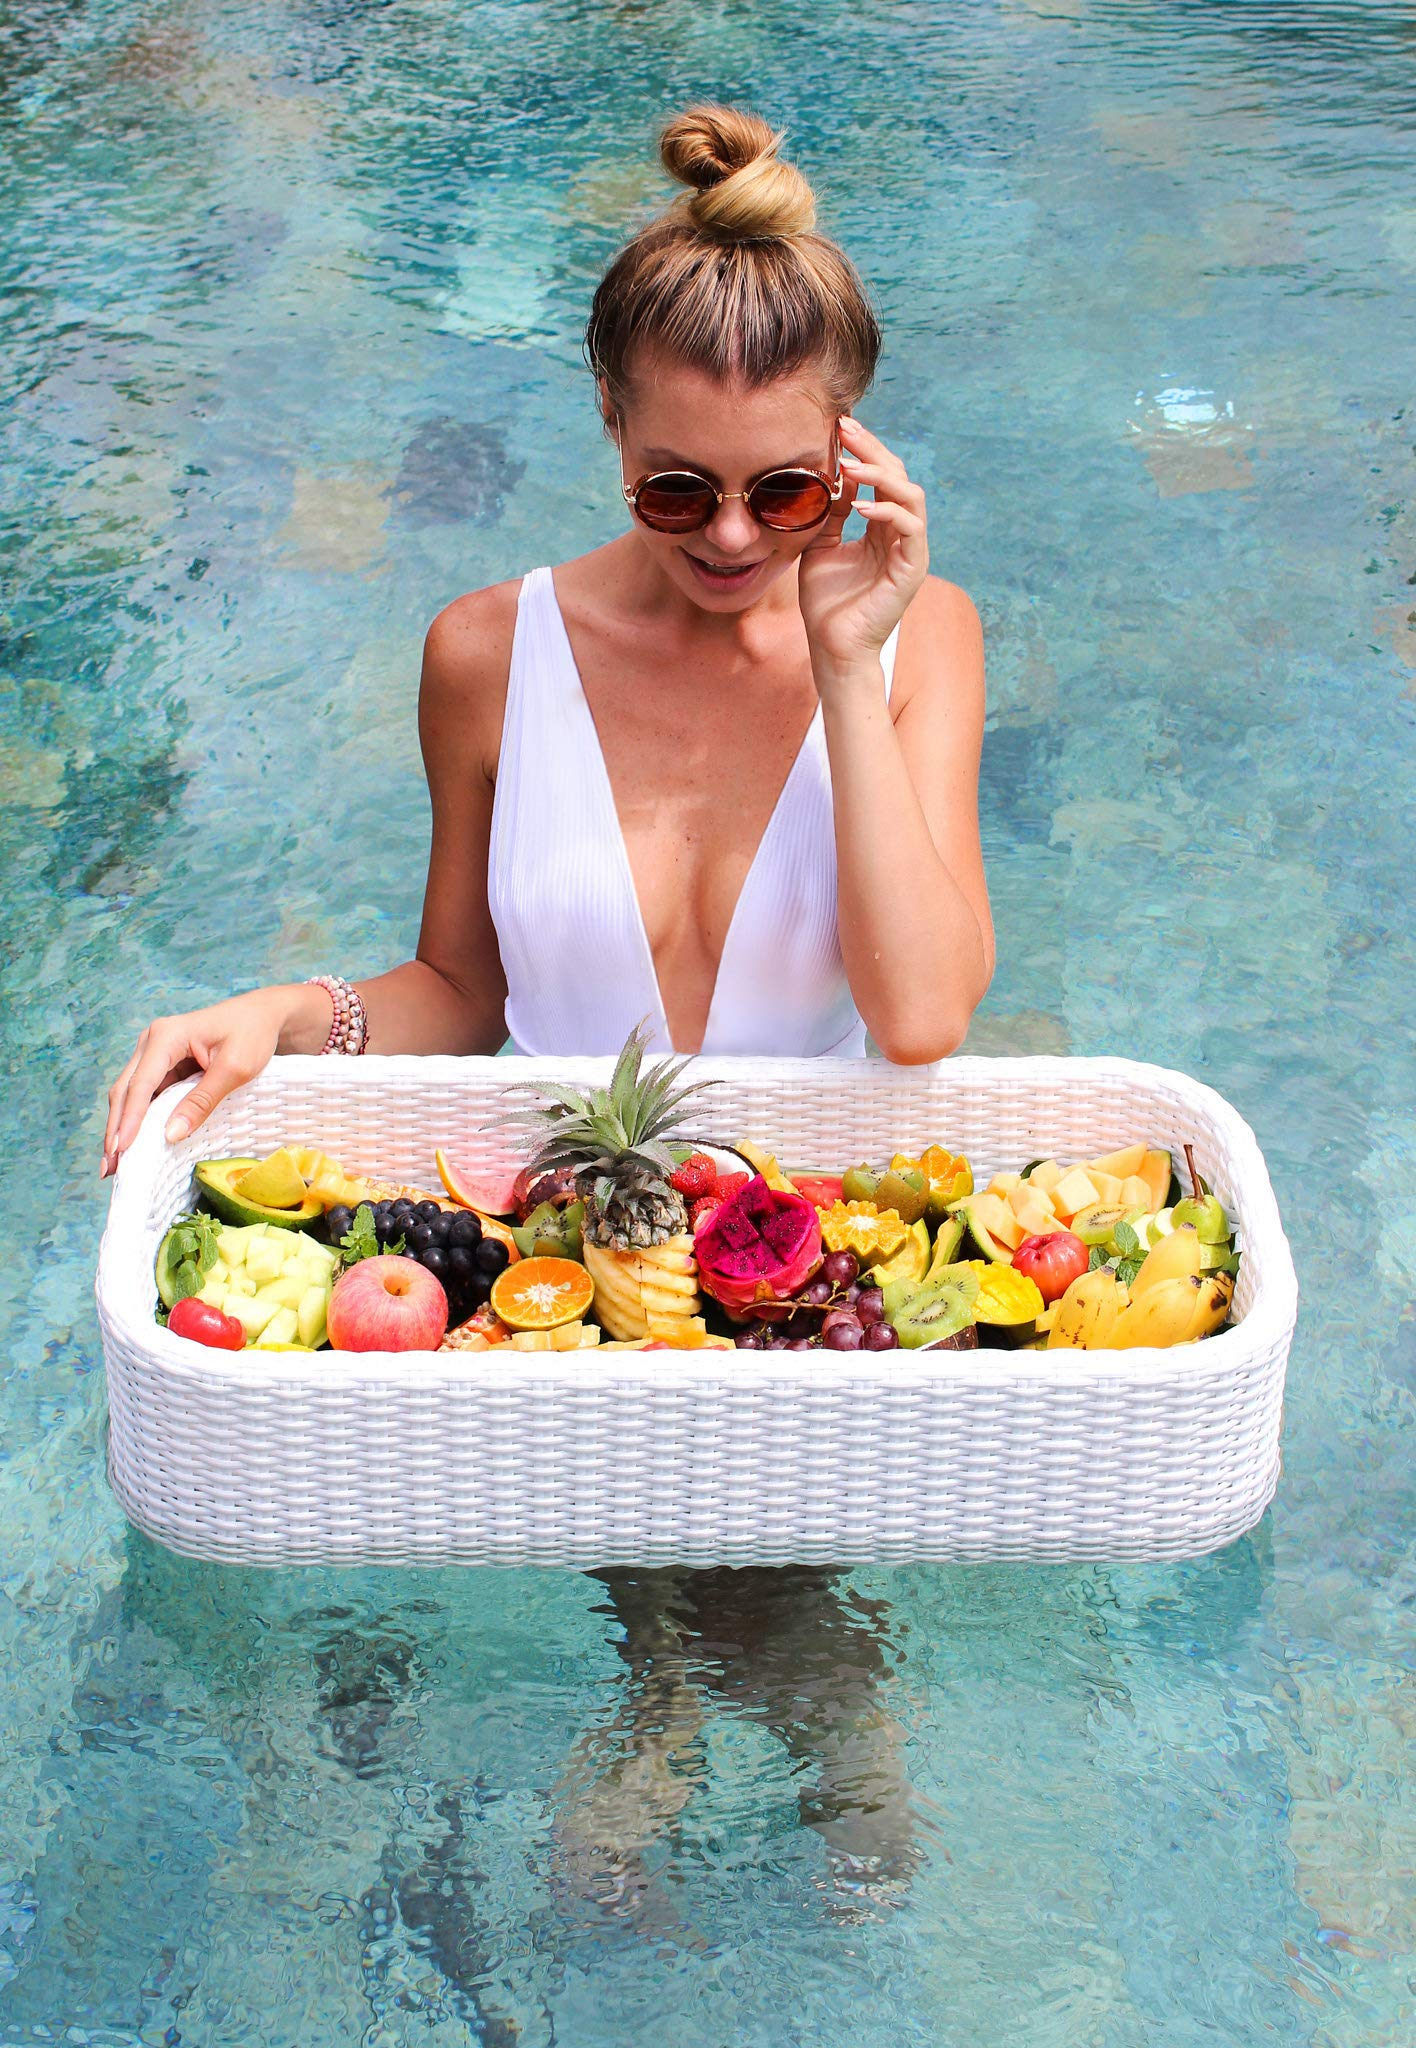 Floating Tray Luxury Floating Serving Tray Table & Bar - Swimming Pool Floats for Adults for Sandbars, Spas, Bath, & Parties - Floating Tray for Pool Serving Drinks, Brunch, Food on the Water - White